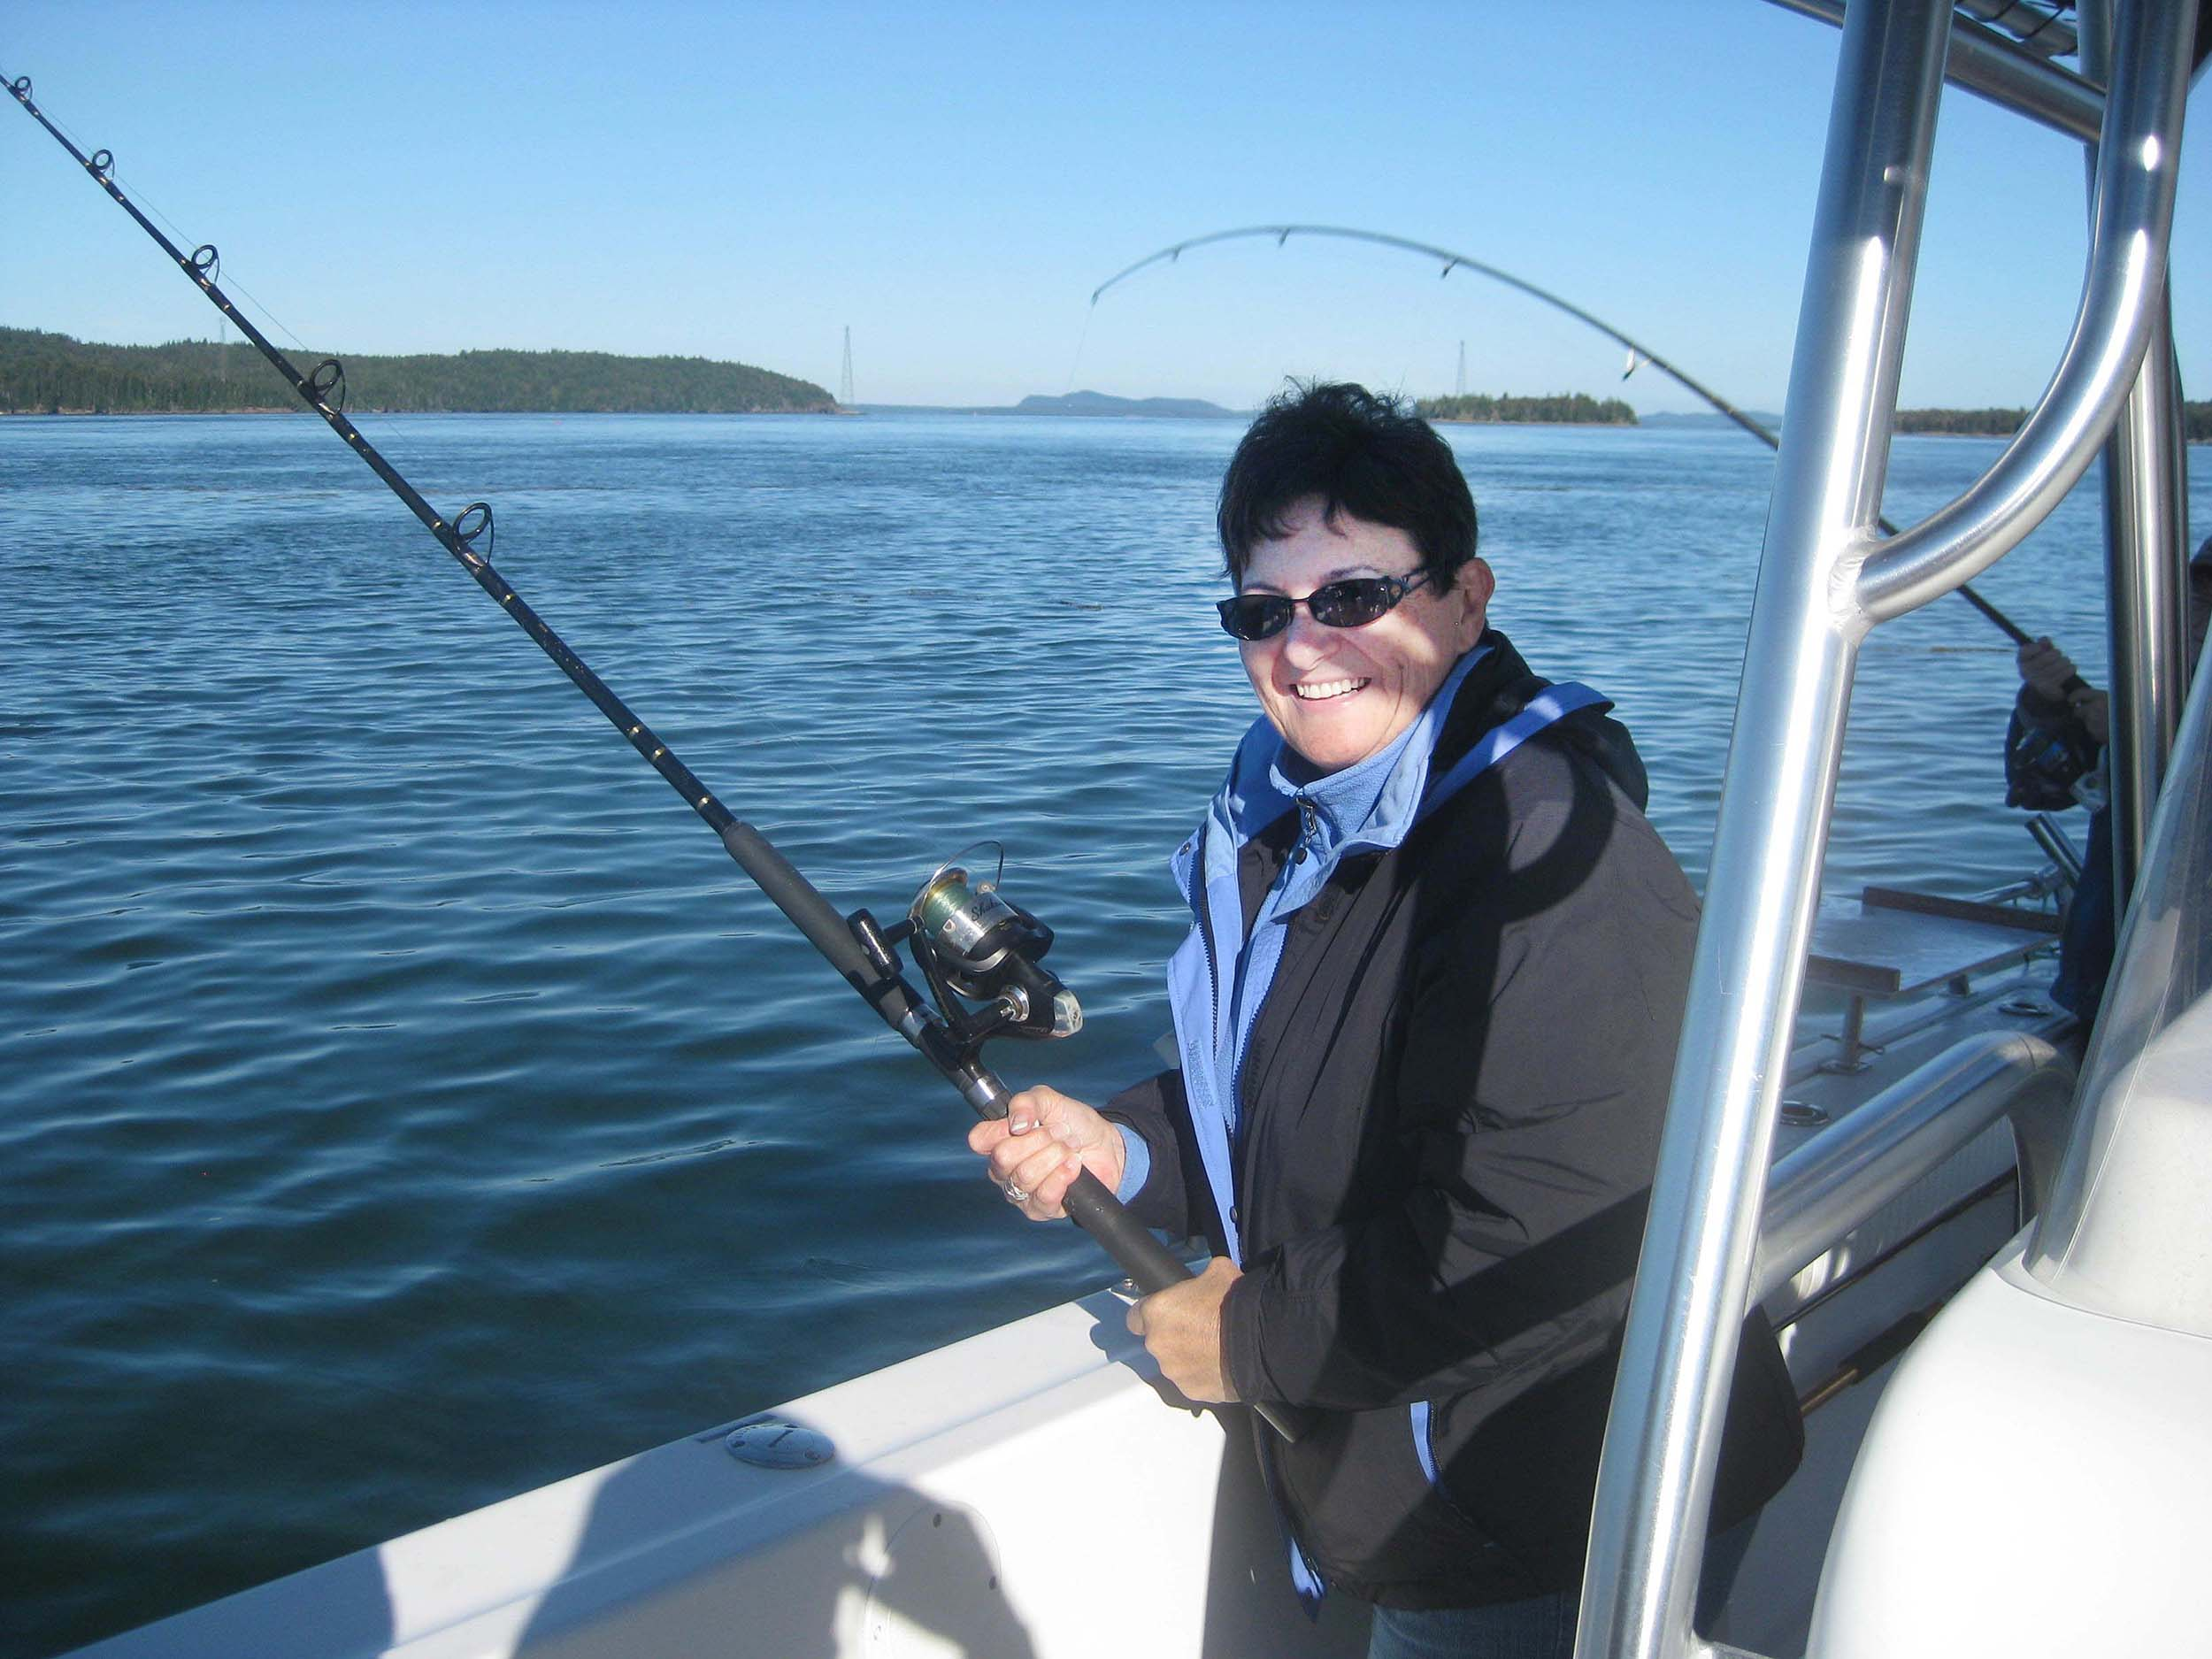 Fishing the Bay of Fundy